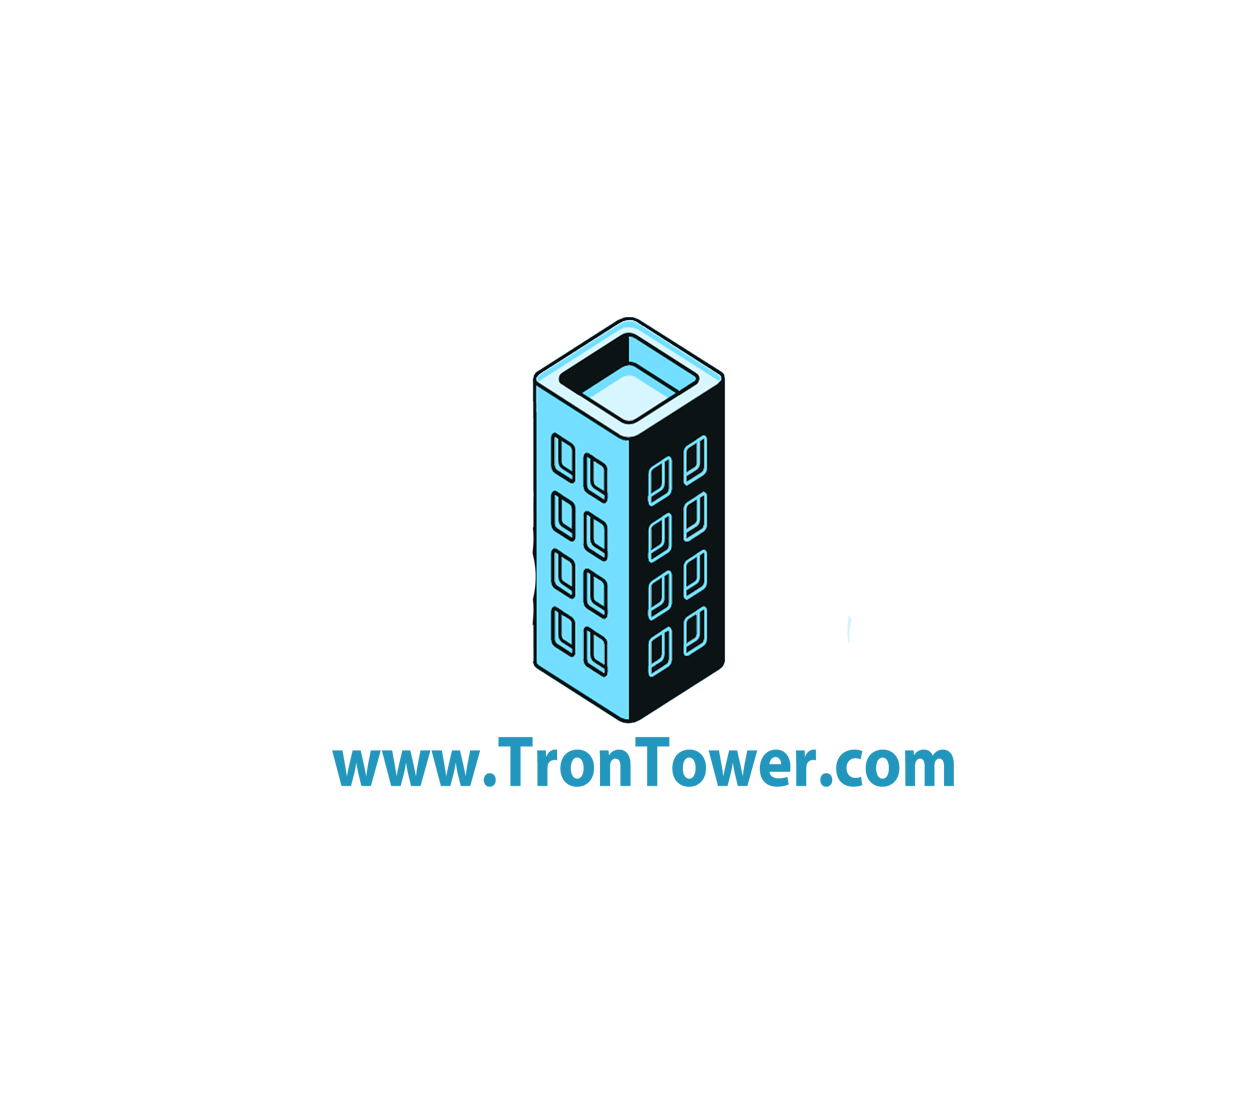 Tron Tower - tron investment site logo